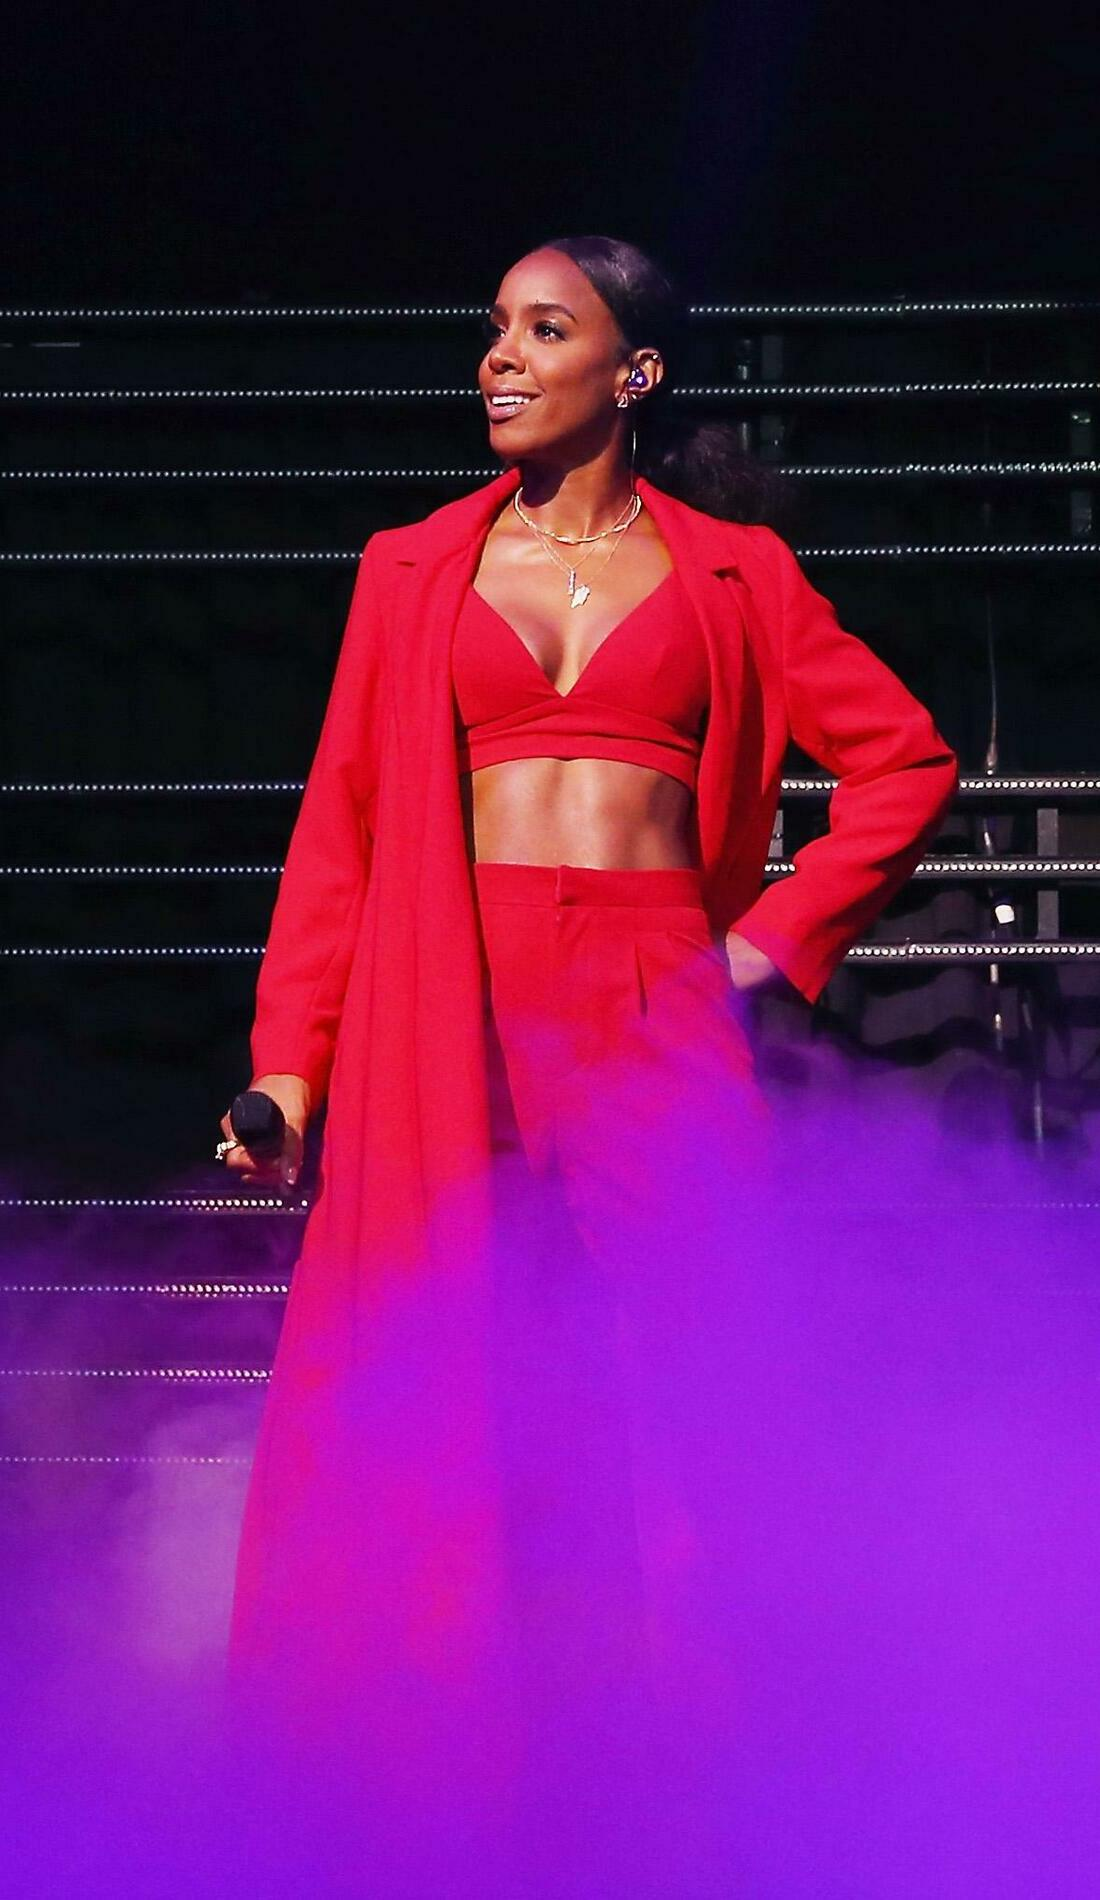 A Kelly Rowland live event